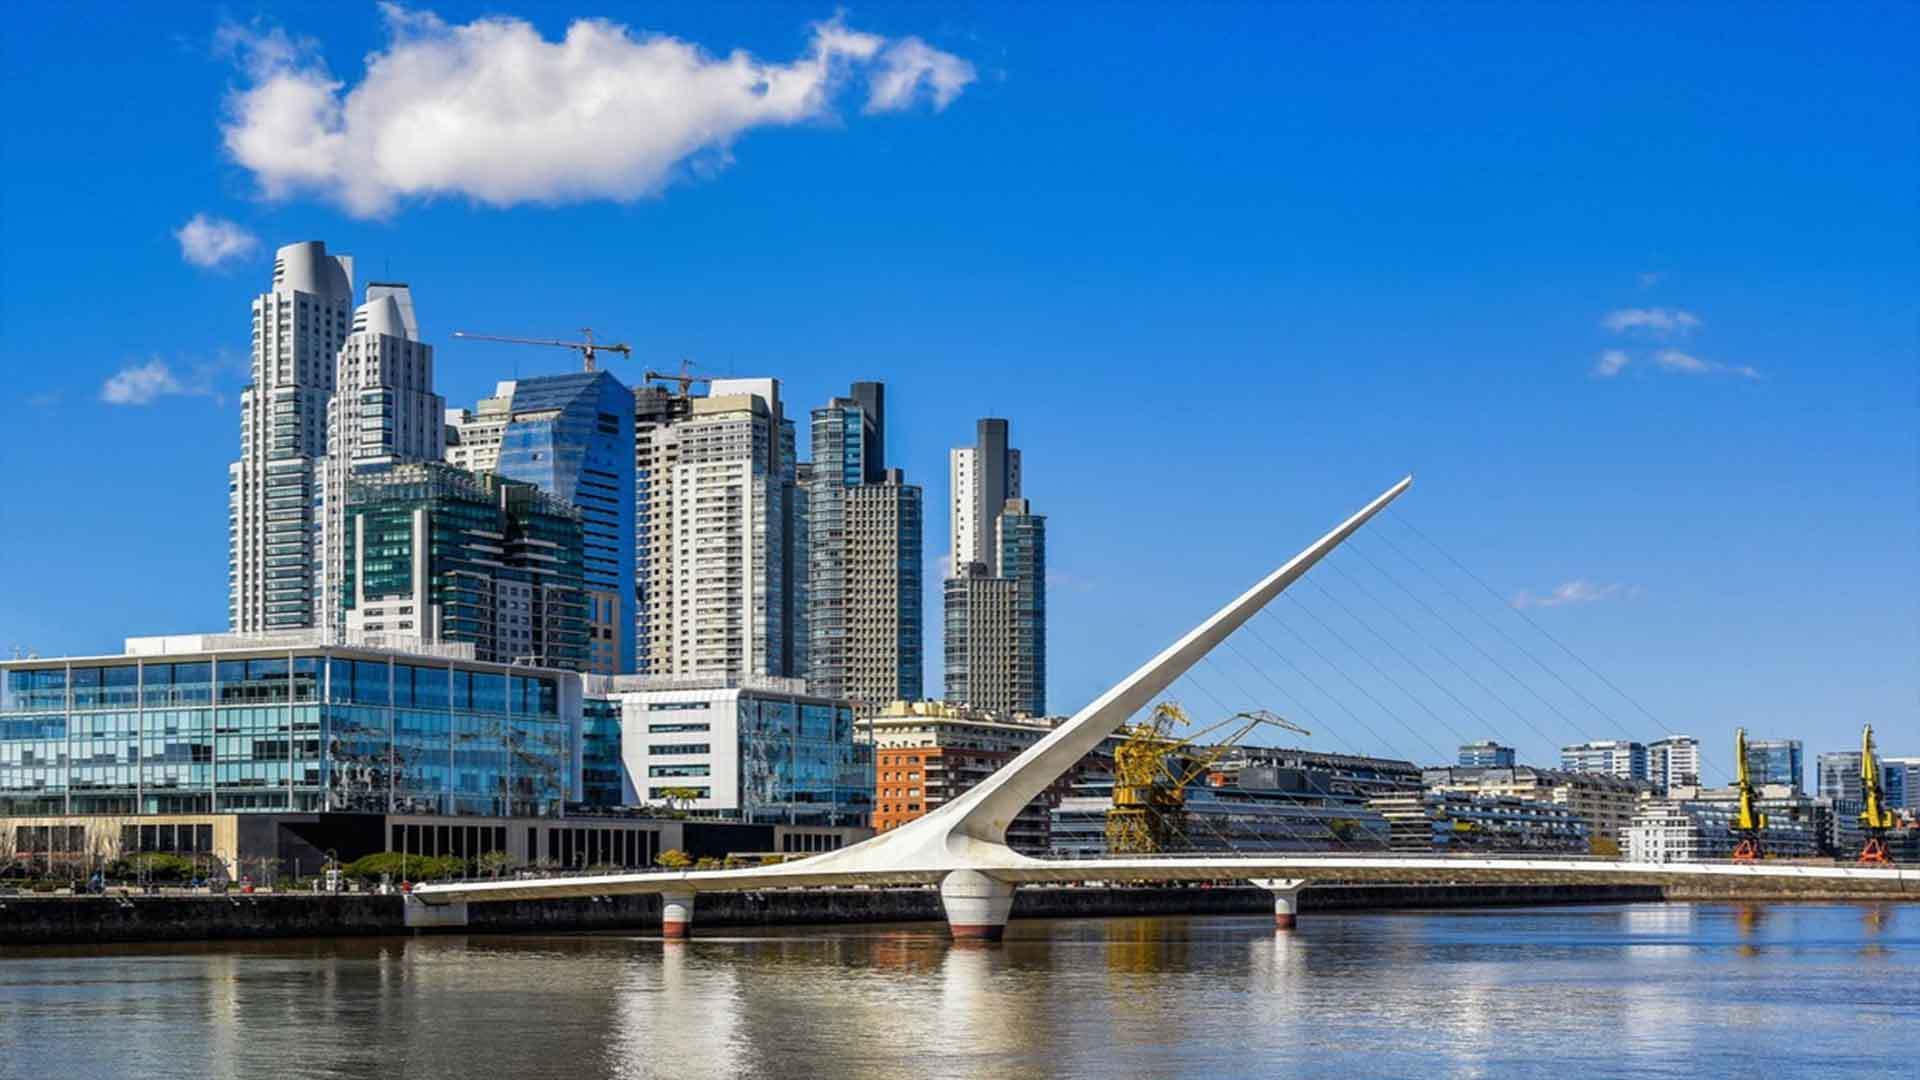 The Complete Buenos Aires Vacation Travel Guide Zen Tripstar Puerto Madero with the Puente de la Mujer Buenos Aires Argentina.